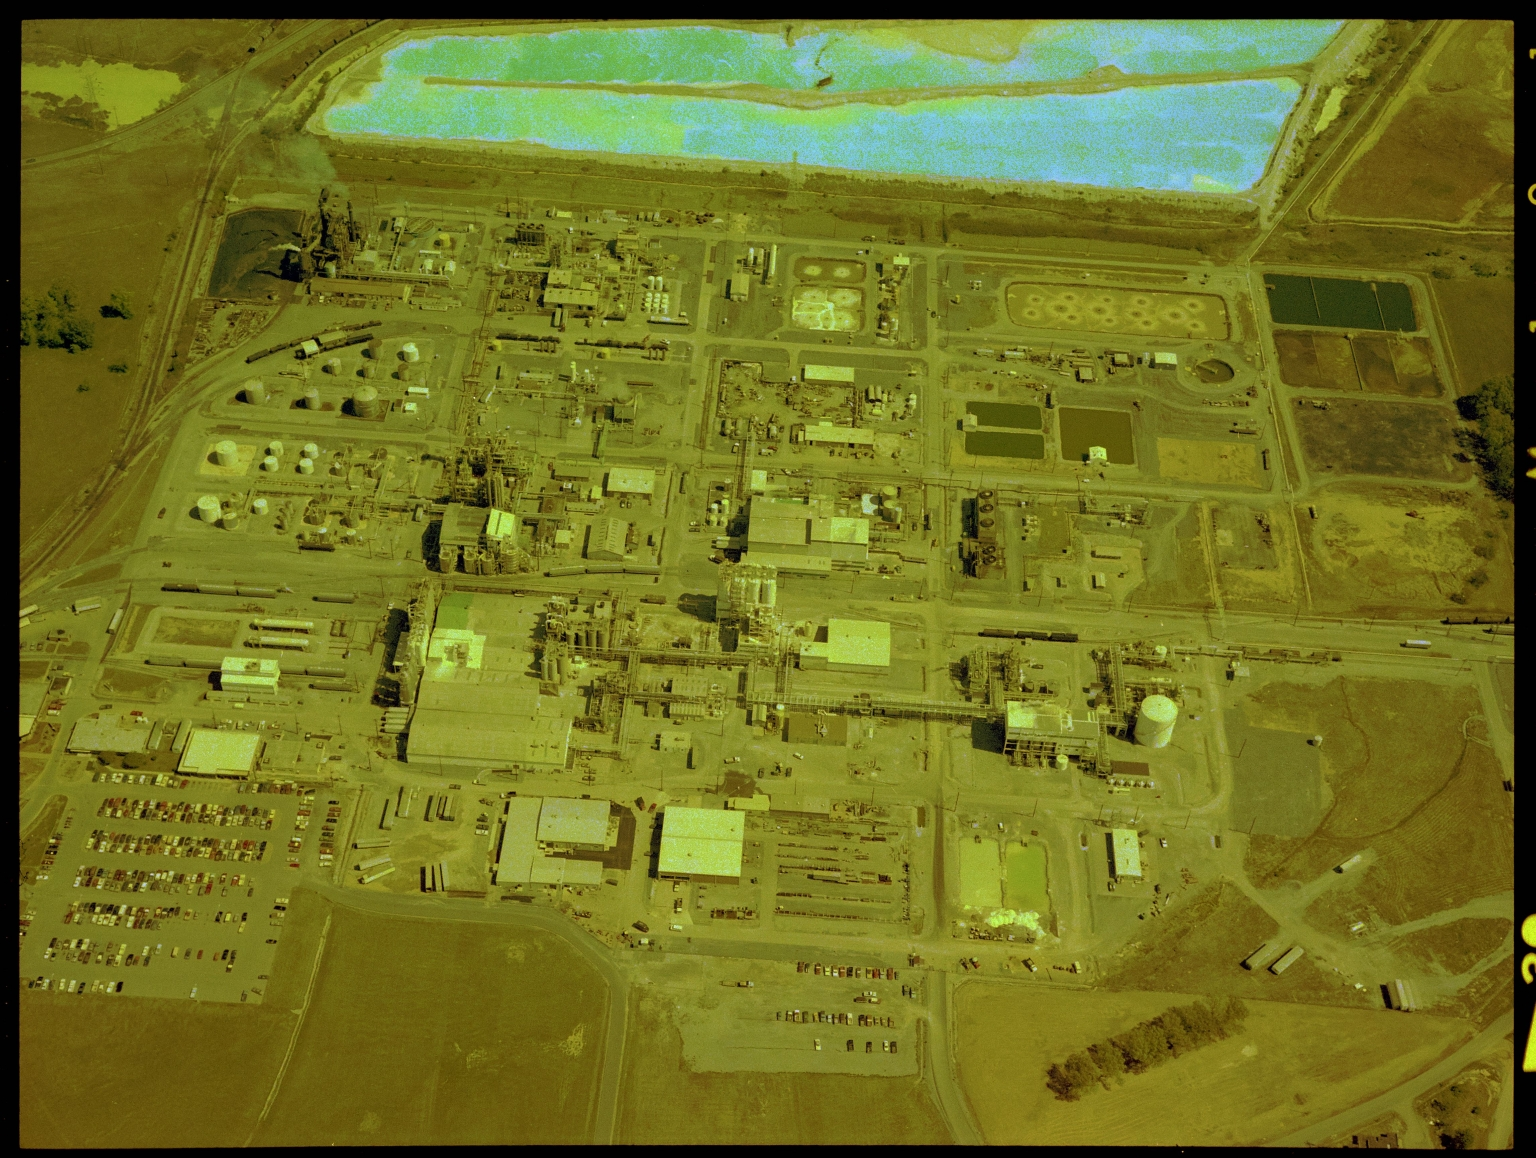 Air Products and Chemicals, Aerial photograph